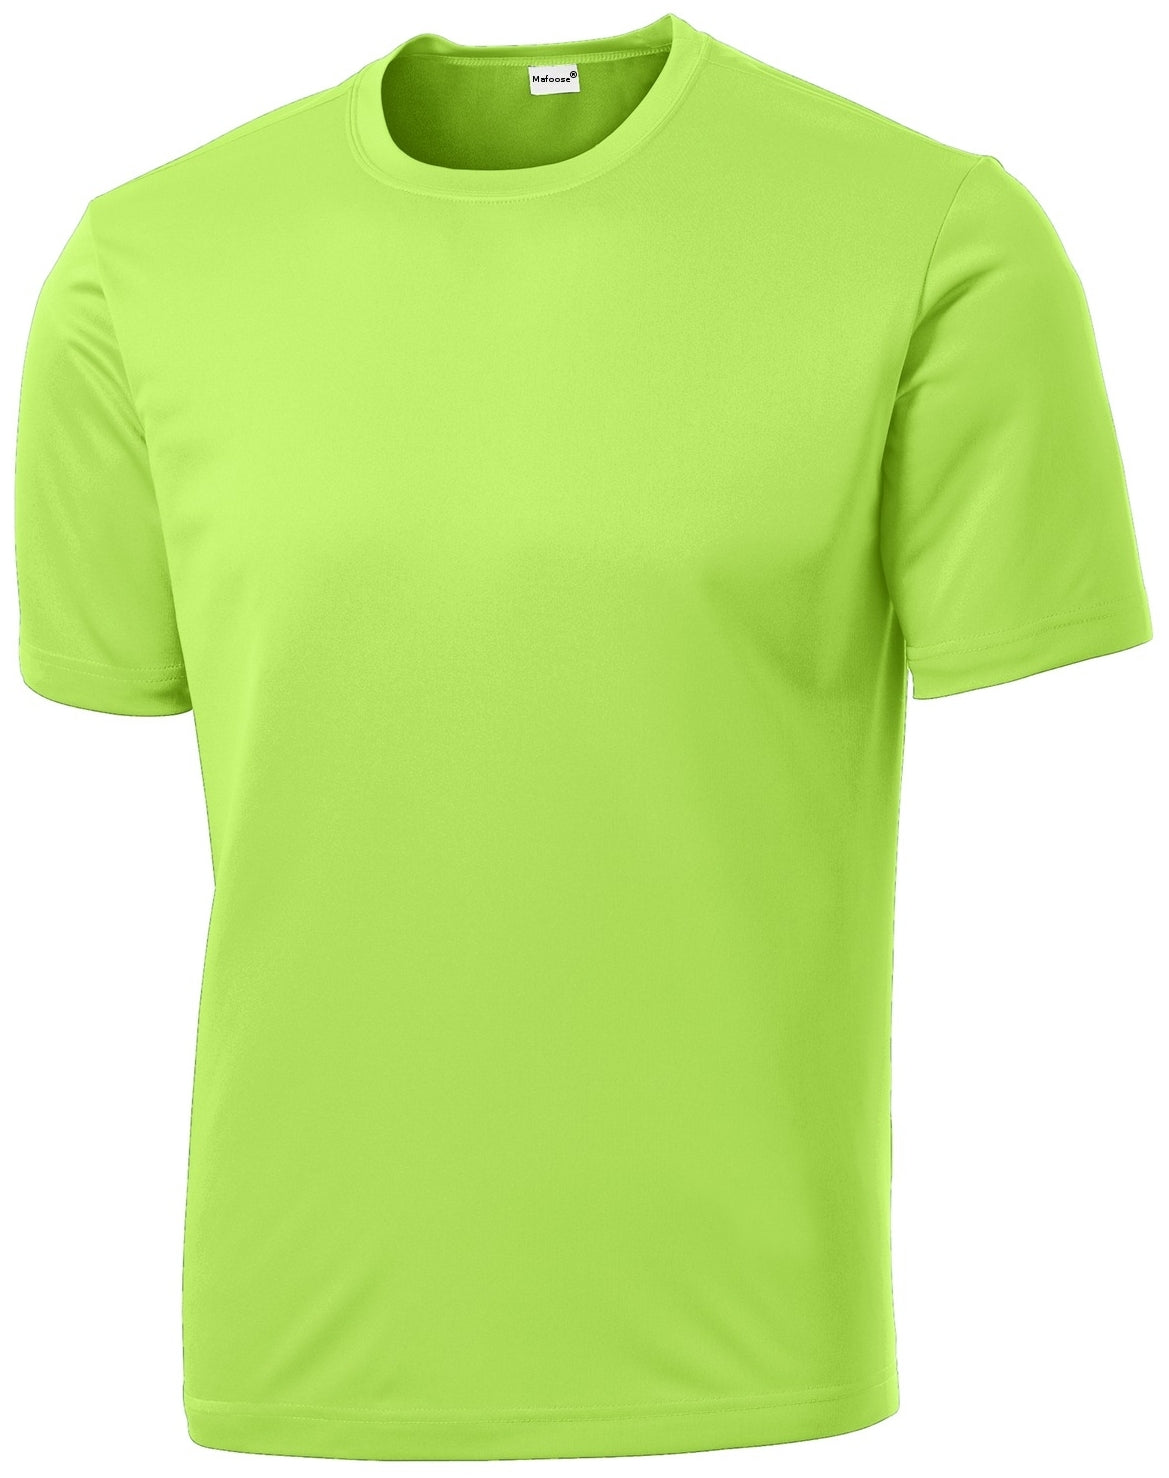 Men's PosiCharge Competitor Tee Shirt